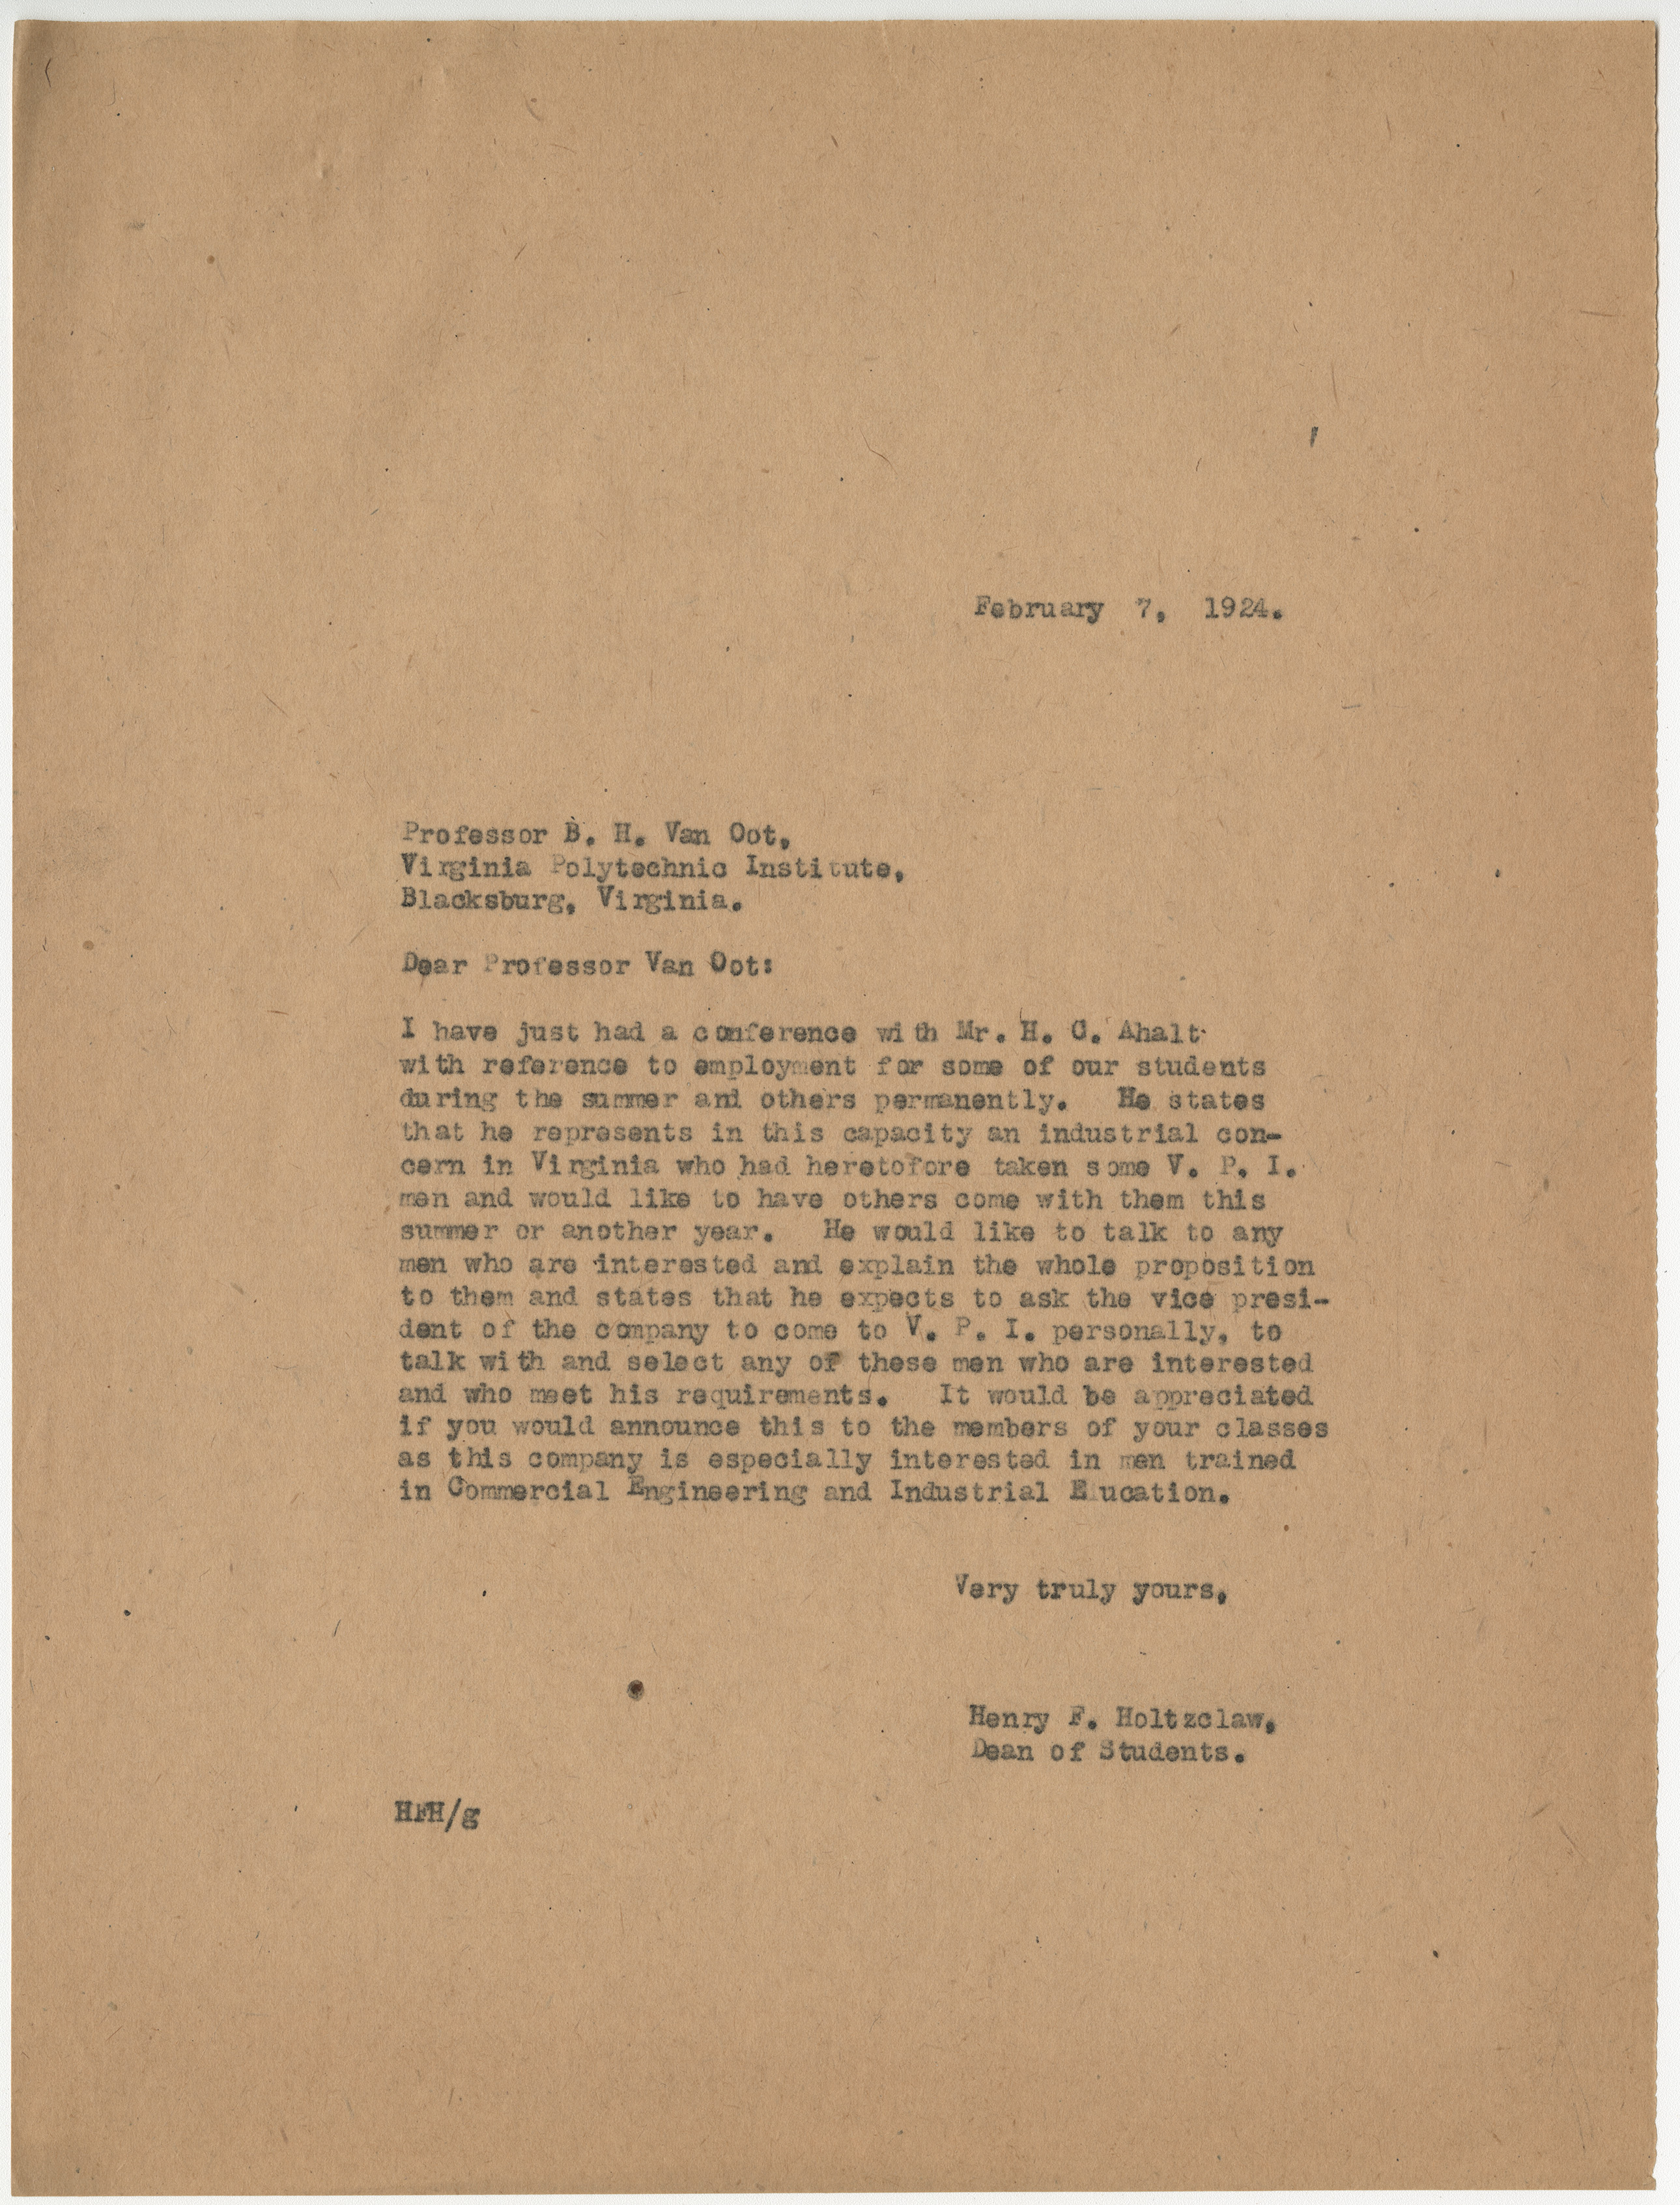 Letter from Henry F. Holtzclaw to Professor B.H. Van Oot, regarding the potential jobs for students, February 7, 1924, from the Records of the Dean of Students, Henry F. Holtzclaw, RG 8/2a